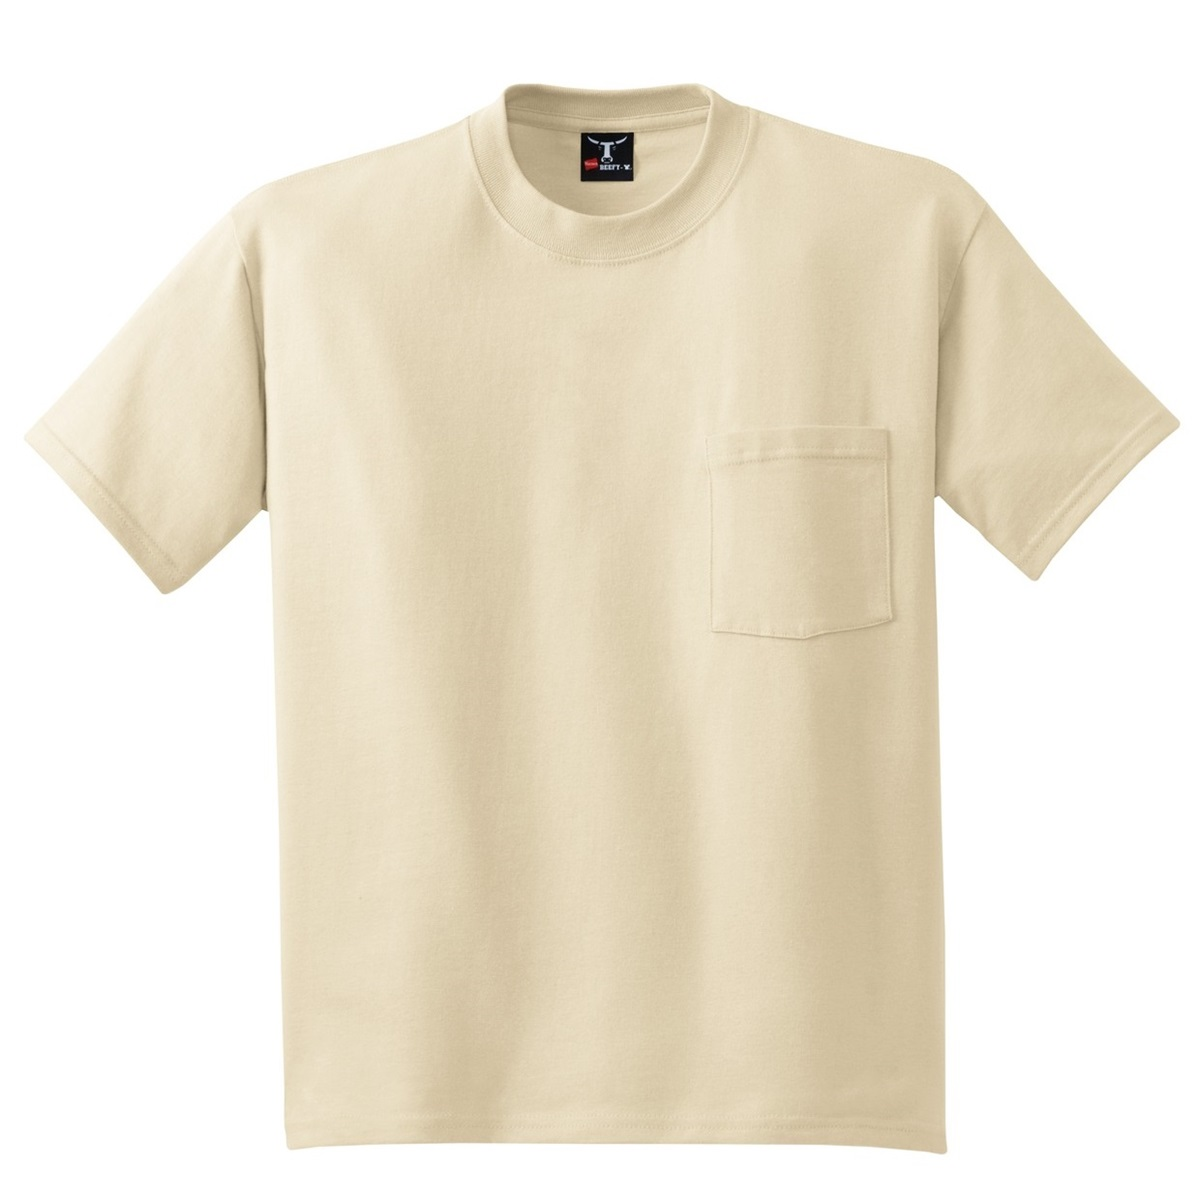 Hanes 5190 beefy t cotton t shirt with pocket sand for Hanes beefy t custom shirts